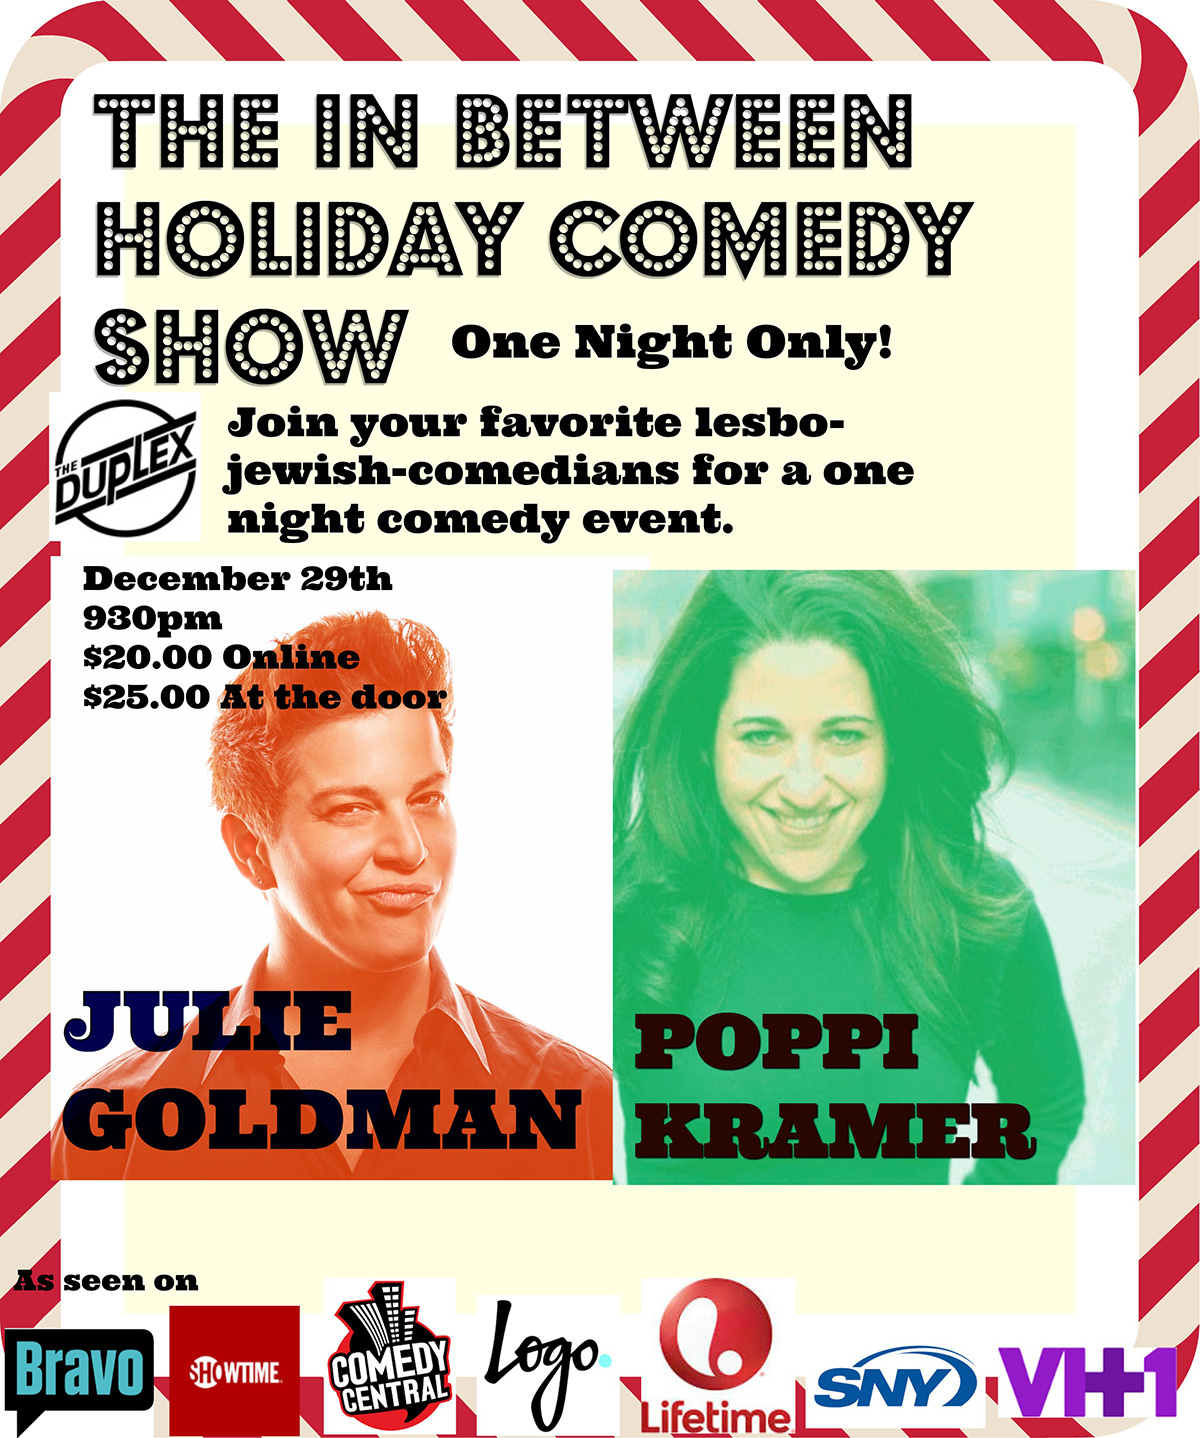 Holiday Comedy Show with Julie Goldman & Poppi Kramer